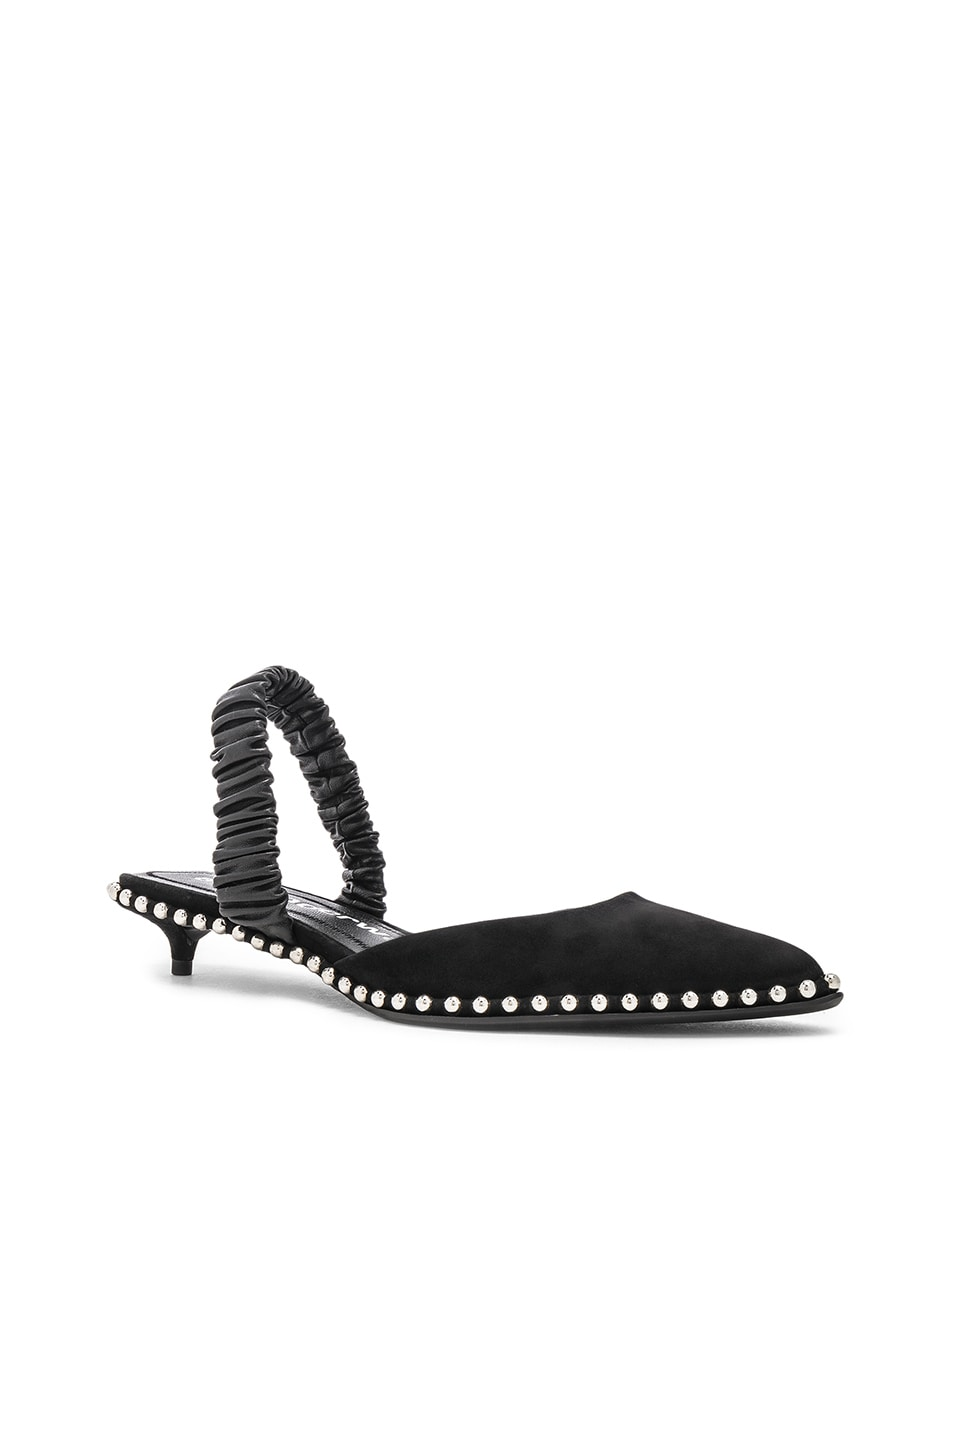 Image 2 of Alexander Wang Nina Kid Suede Heel in Black